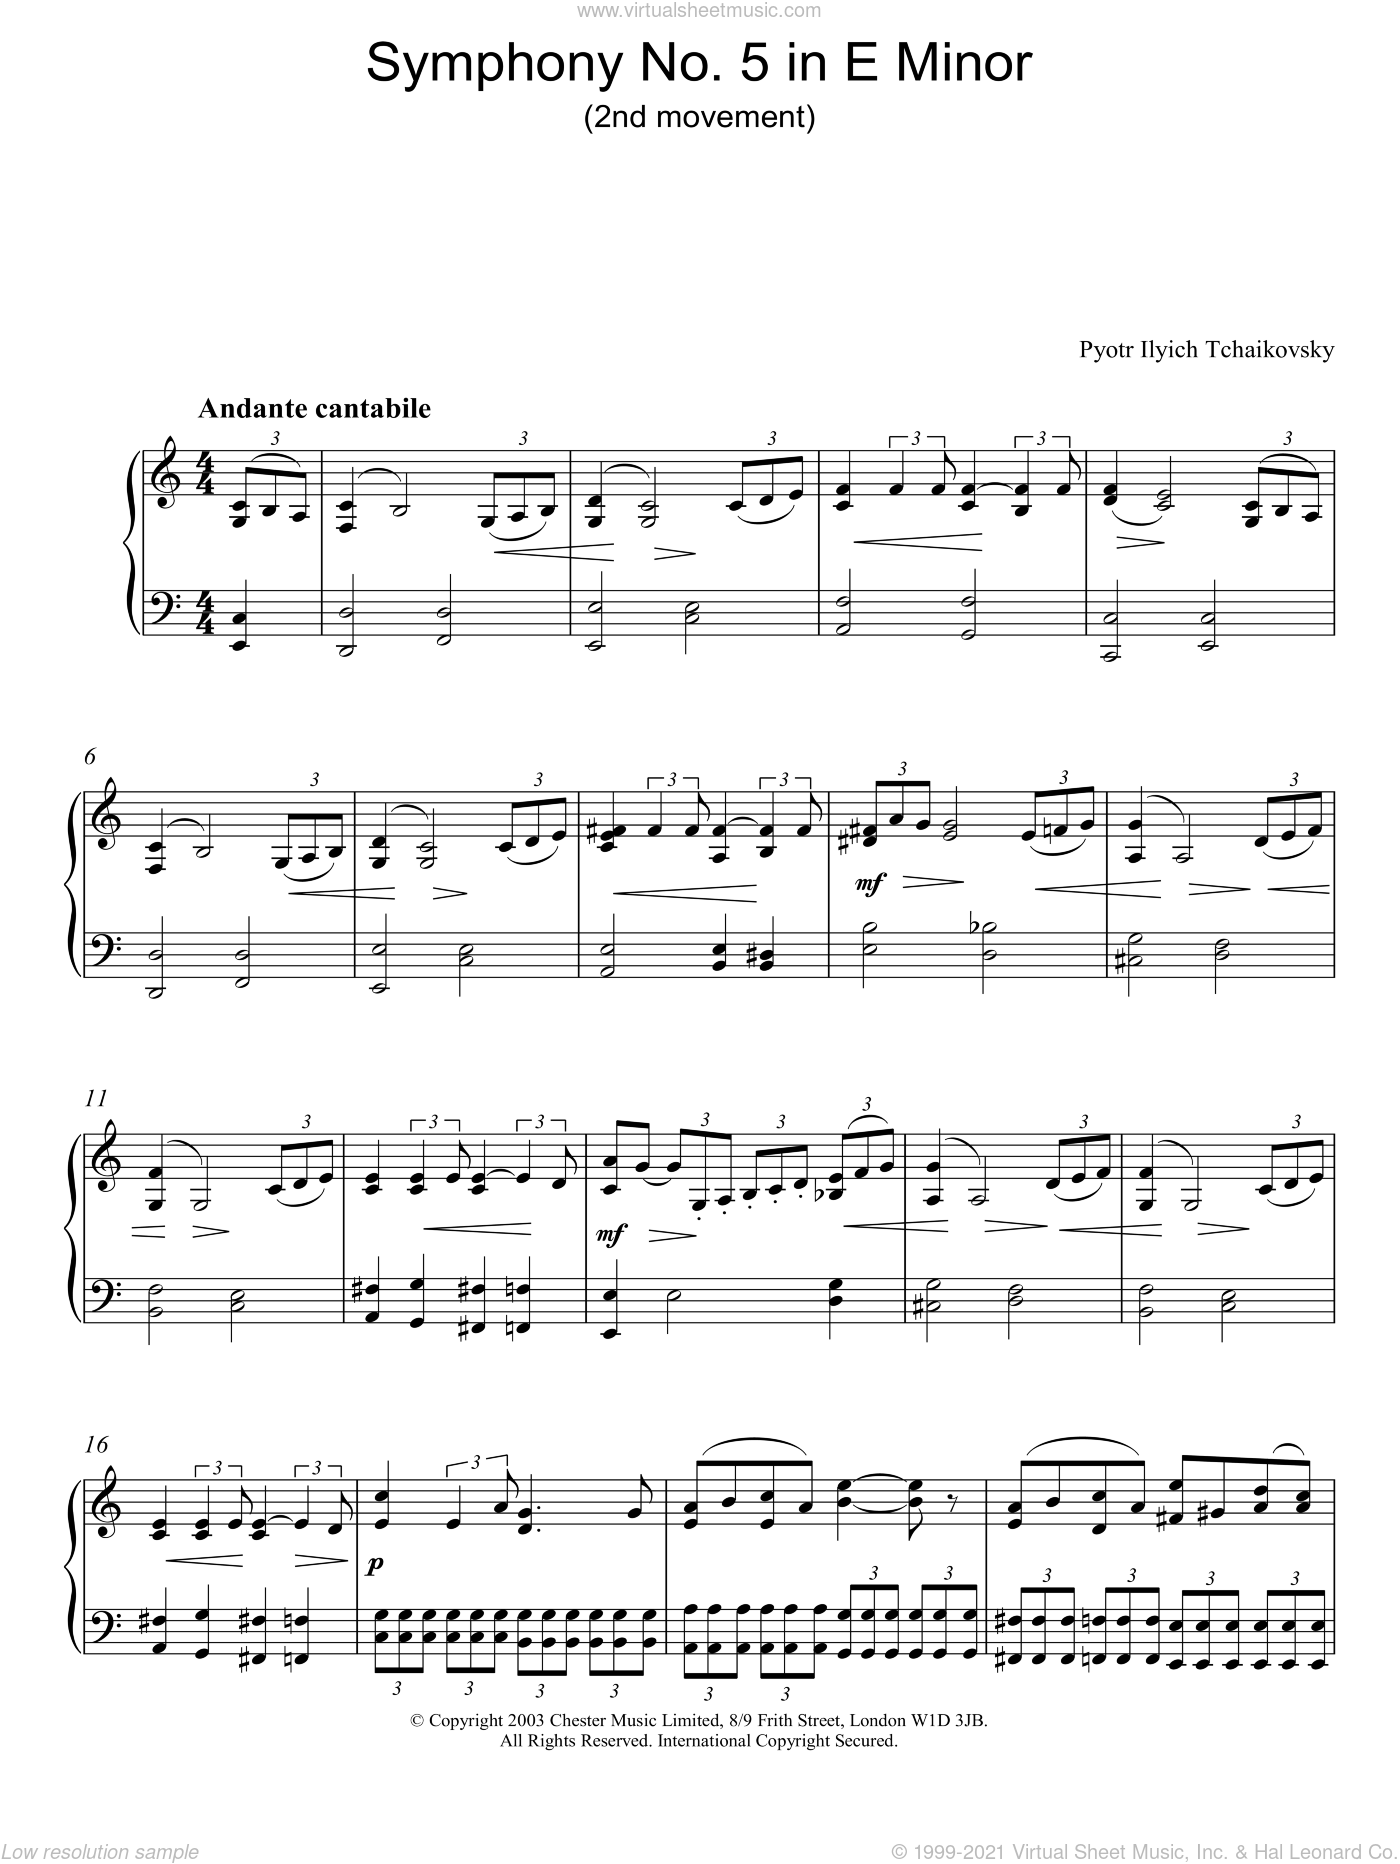 Symphony No. 5 in E Minor (2nd movement) sheet music for piano solo by Pyotr Ilyich Tchaikovsky